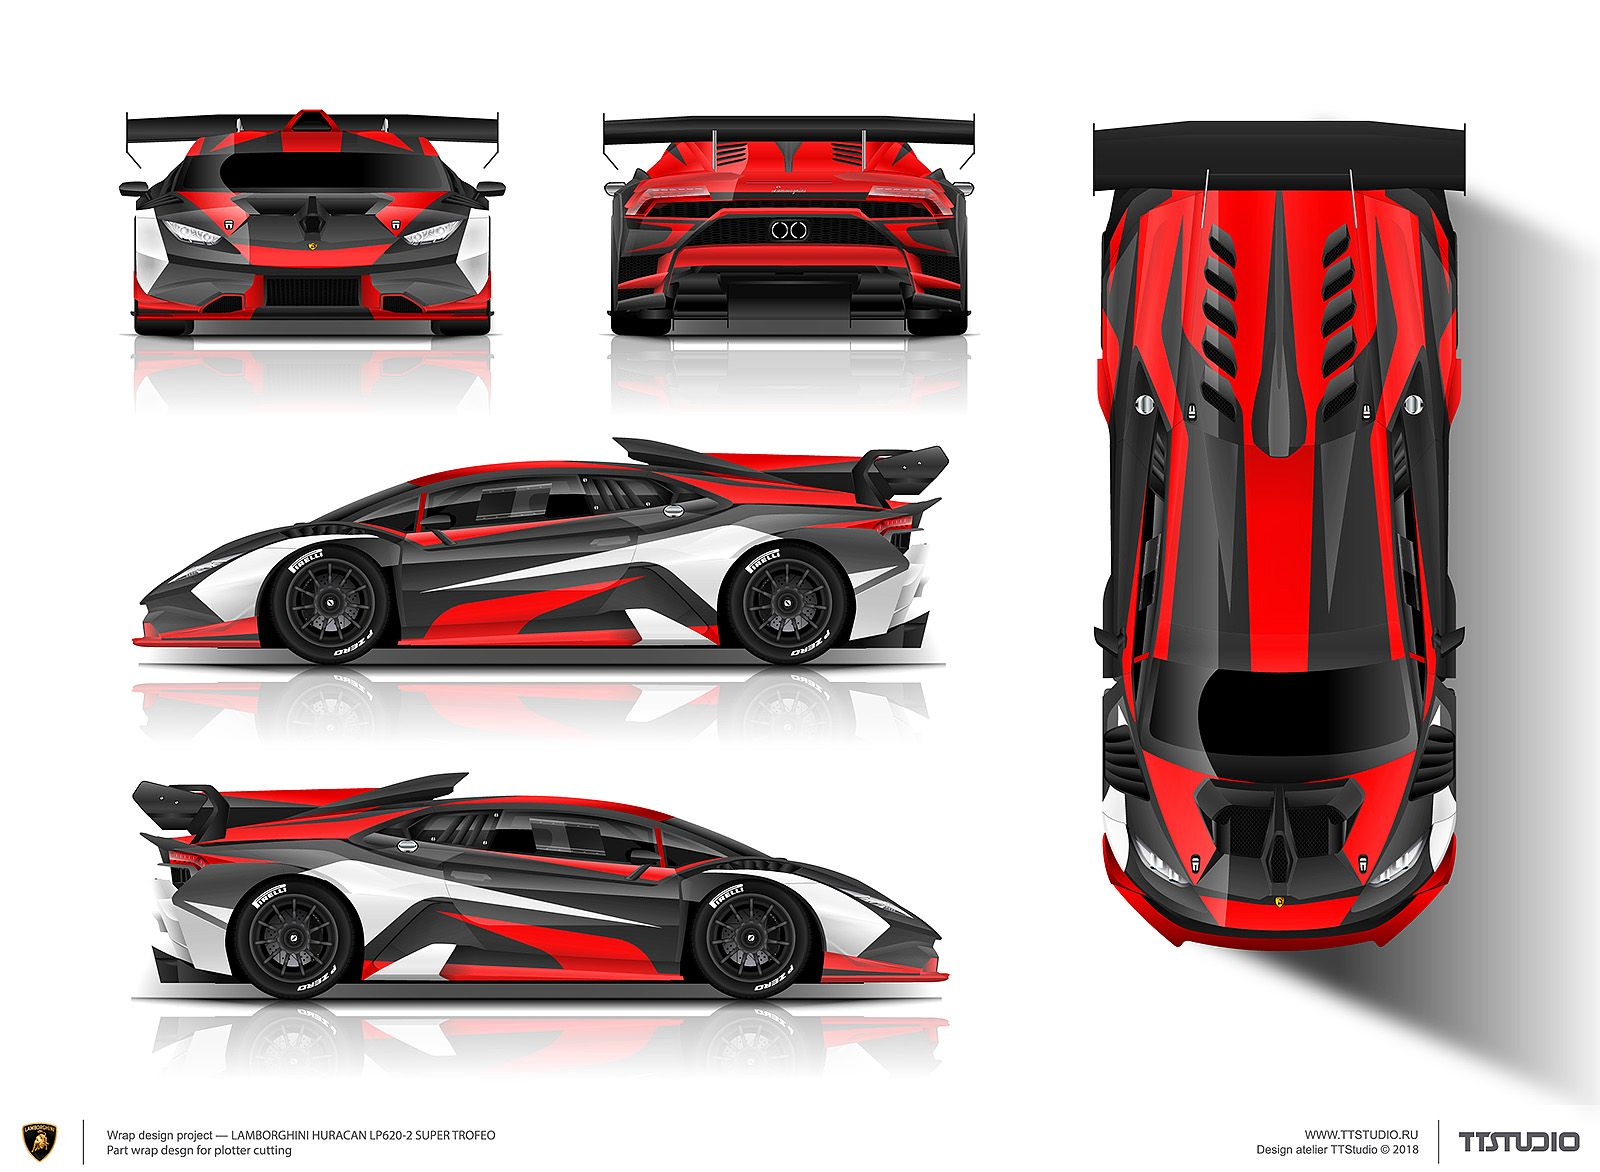 The Approved Part Wrap Design Project For Lamborghini Huracan Trofeo